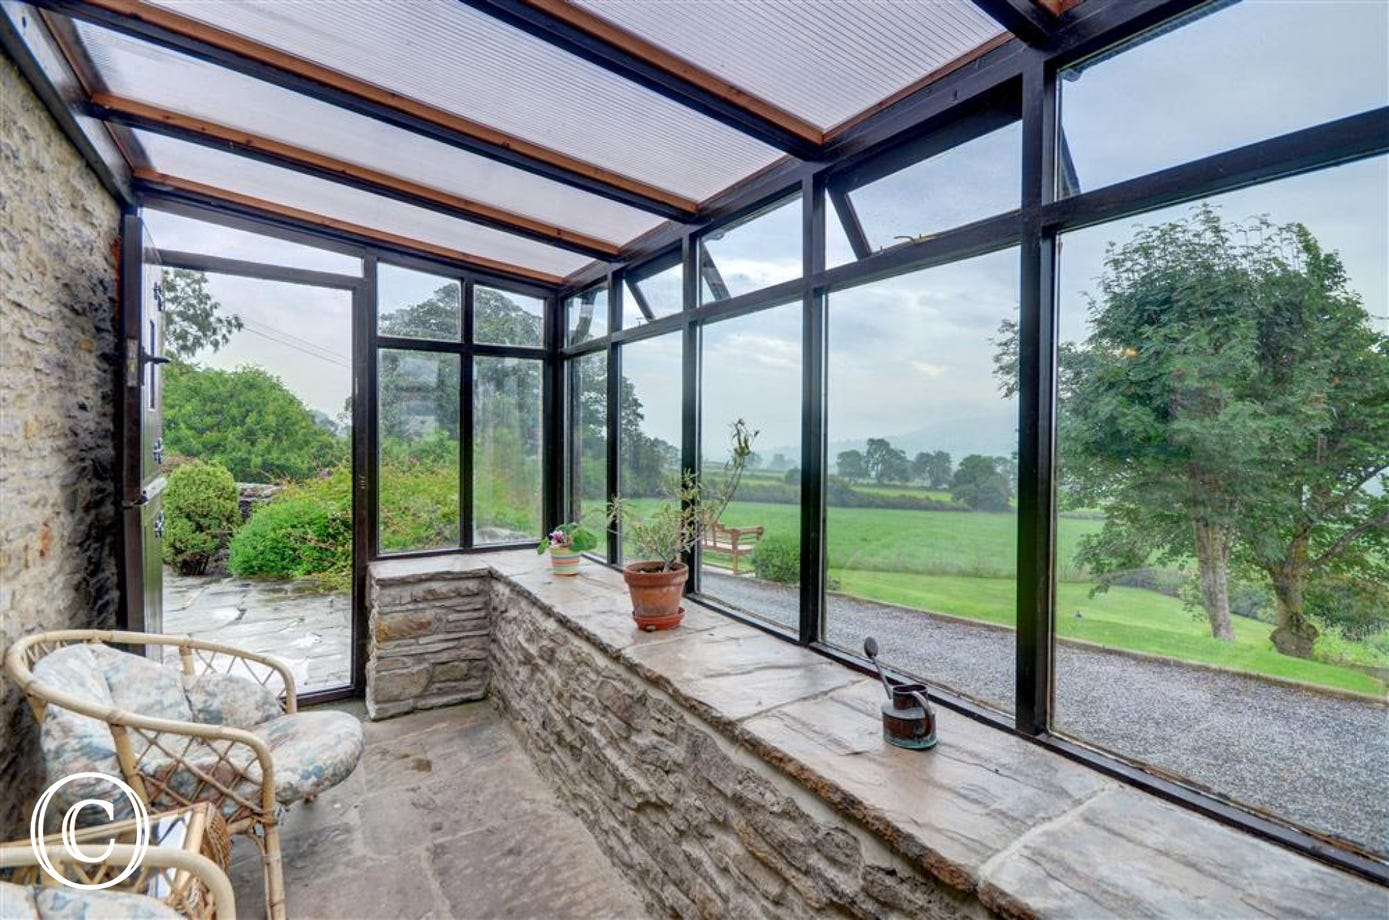 The conservatory at Field Cottage which overlooks the stunning countryside